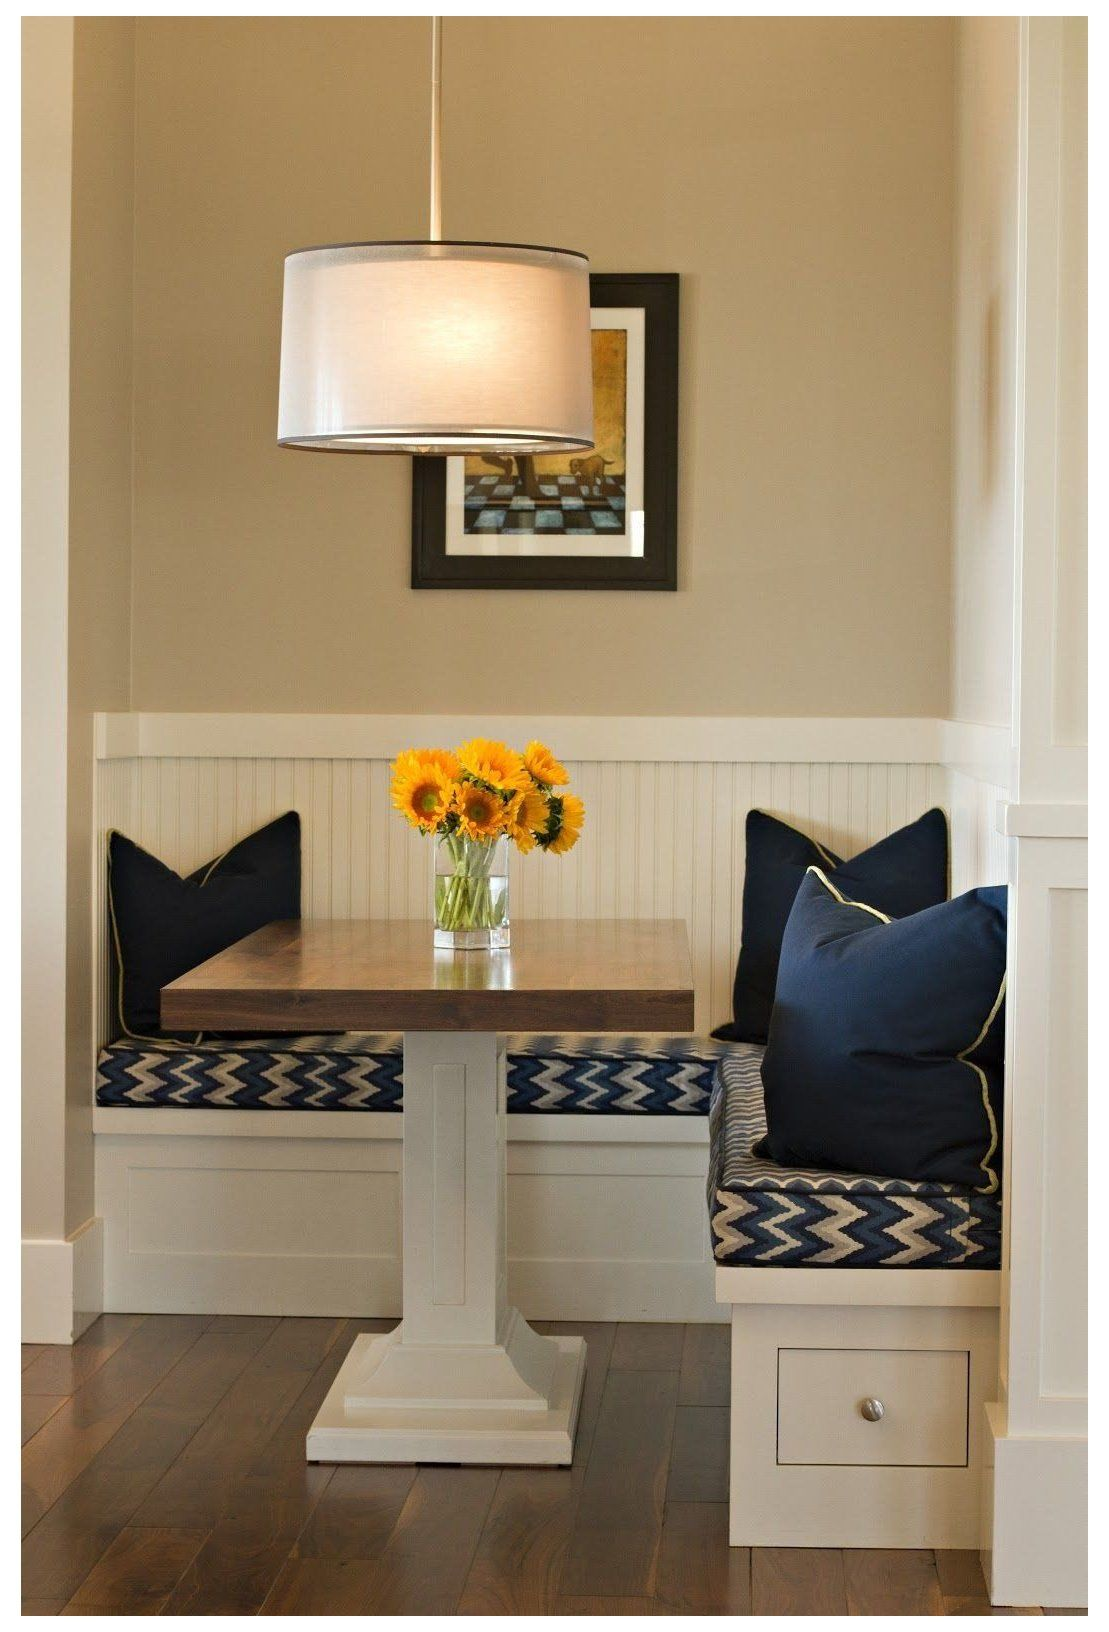 Small Kitchen Table With Bench Seating Cozy Kitchen Corner Small Kitchen Table With Bench Seating Small Dining Room Small Small Kitchen Tables Dining Nook